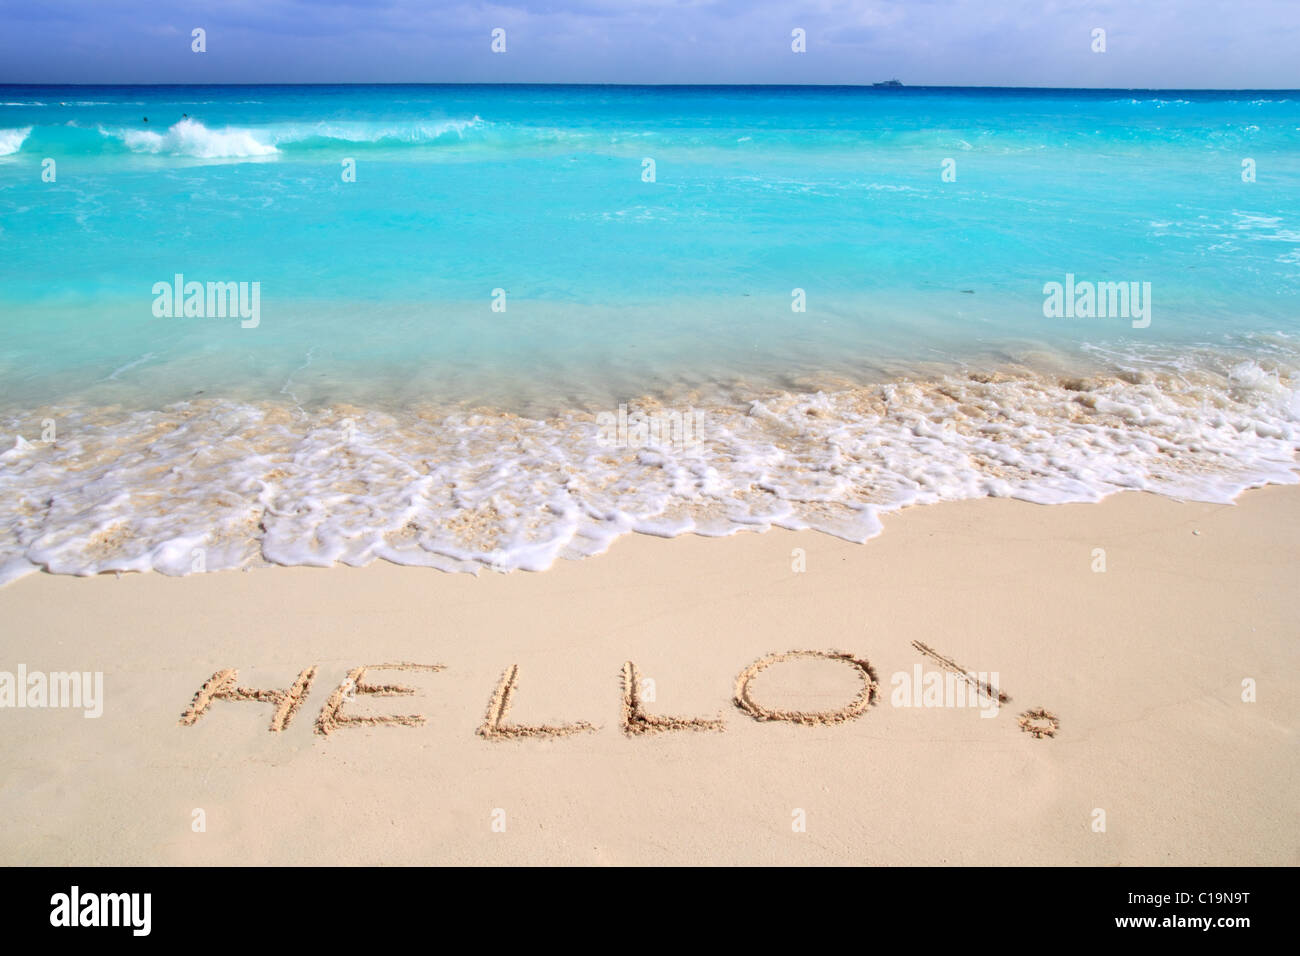 Hello message spell written in tropical beach sand Caribbean turquoise sea - Stock Image